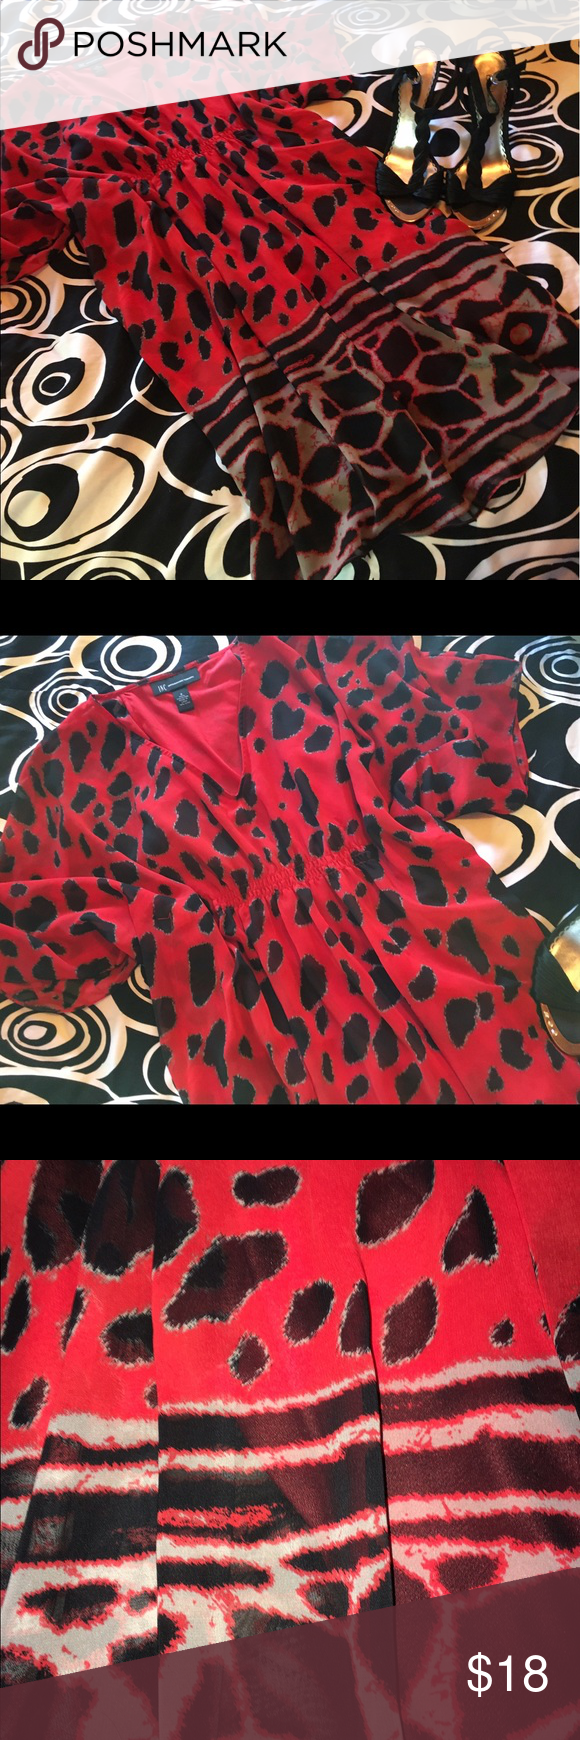 💋NEW RED FLOATY SLV MINI DRESS💋 💋GORGEOUS NWOT SEMI-SHEER MINI WITH FLOATY WIDE SLEEVES. CINCHED EMPIRE WAIST AND ATTACHED SLIP~GORGEOUS💋 Dresses Mini